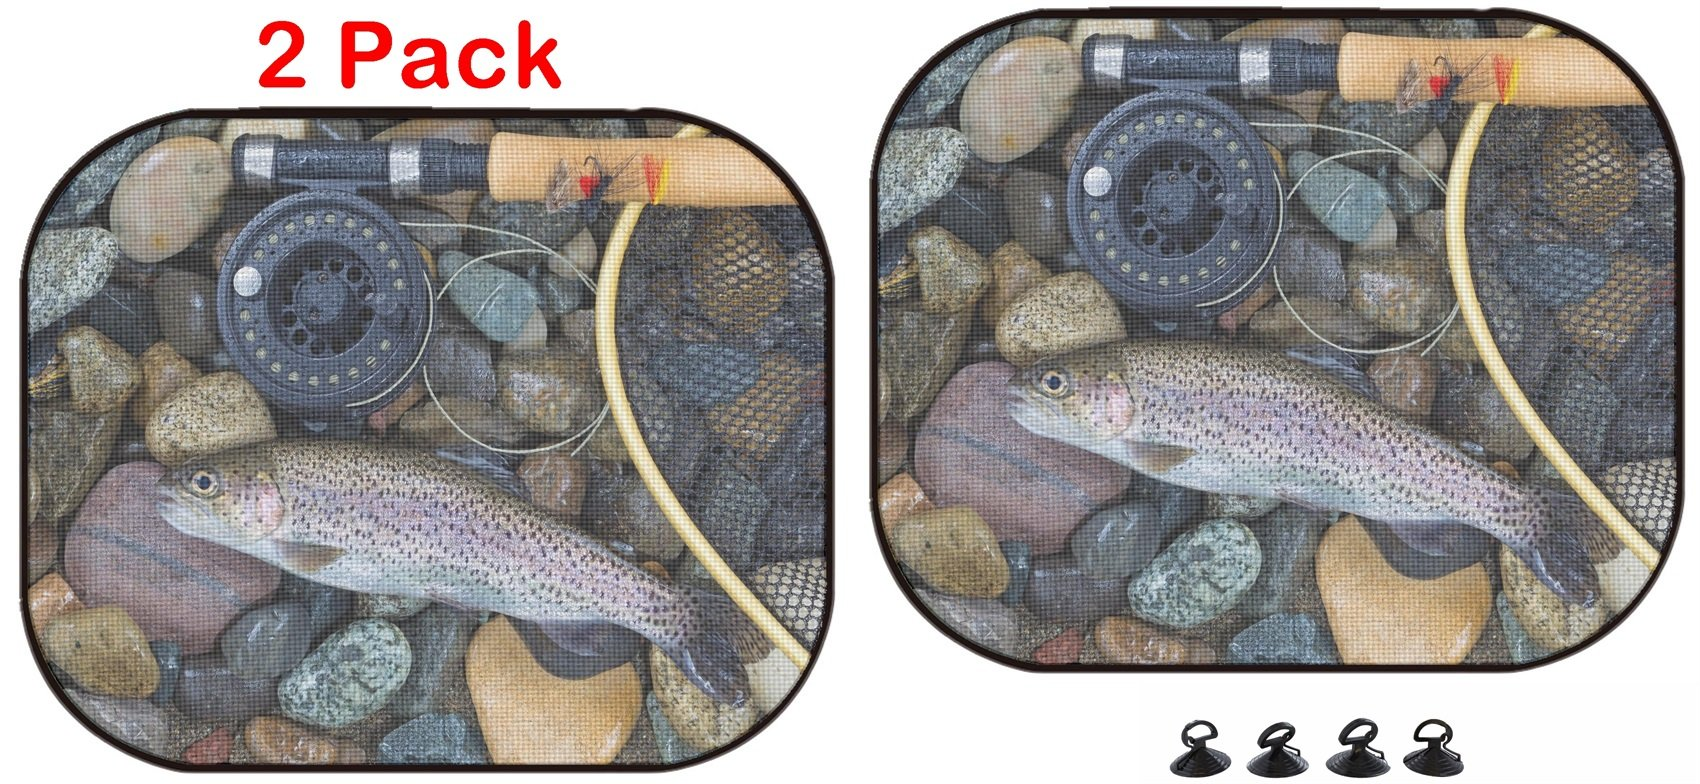 Luxlady Car Sun Shade Protector Block Damaging UV Rays Sunlight Heat for All Vehicles, 2 Pack Image ID: 34662975 Top View of a Single Native Wild Trout Next to Fishing Reel l by Luxlady